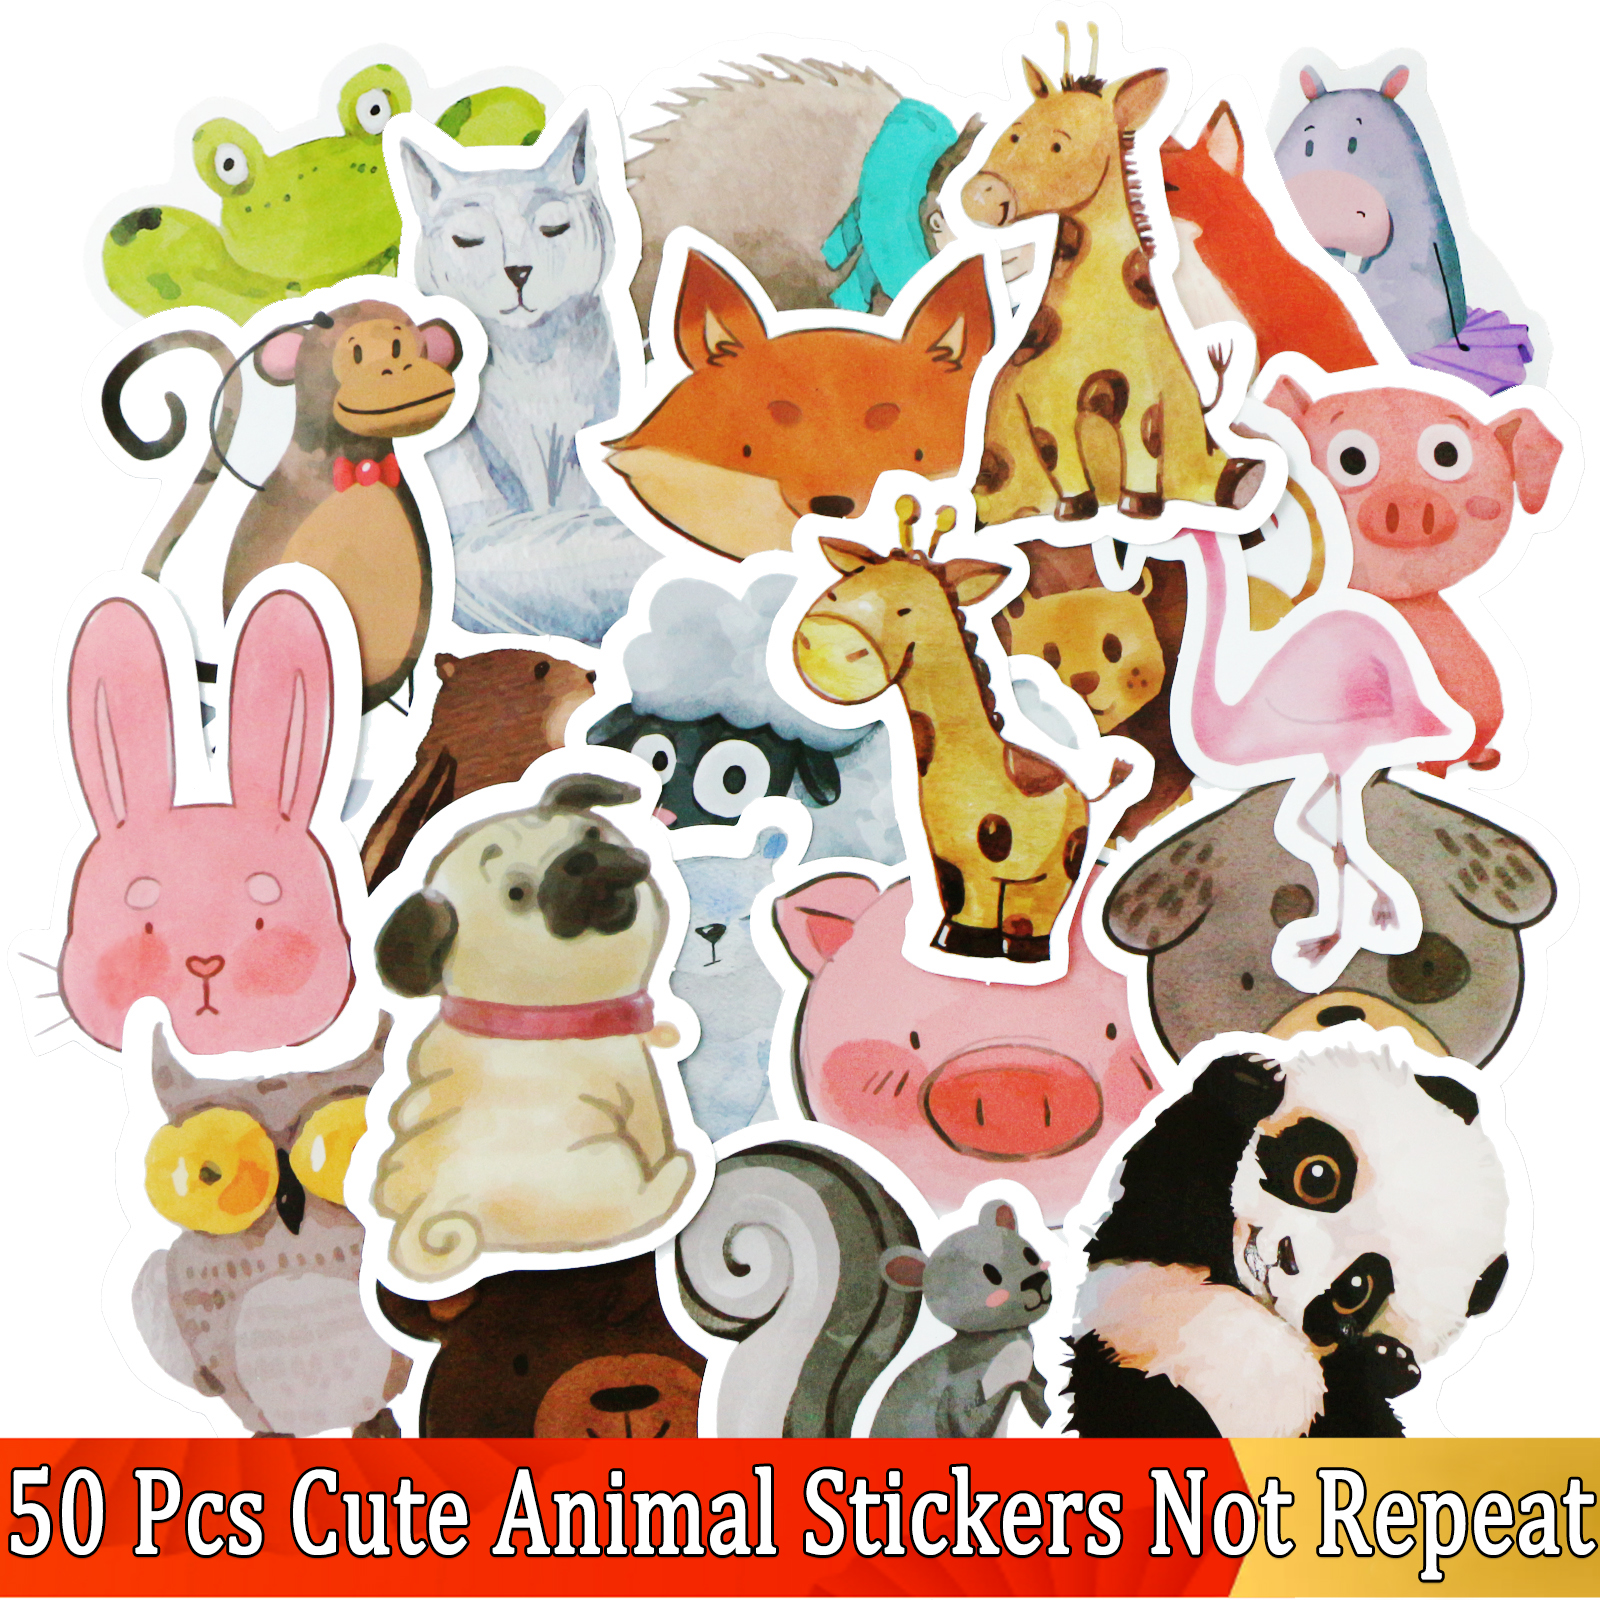 50 PCS JDM Watercolor Animal Sticker Cute Cartoon Educational Toy Stickers Gift For Kids Laptop Suitcase Bicycle Fridge Guitar